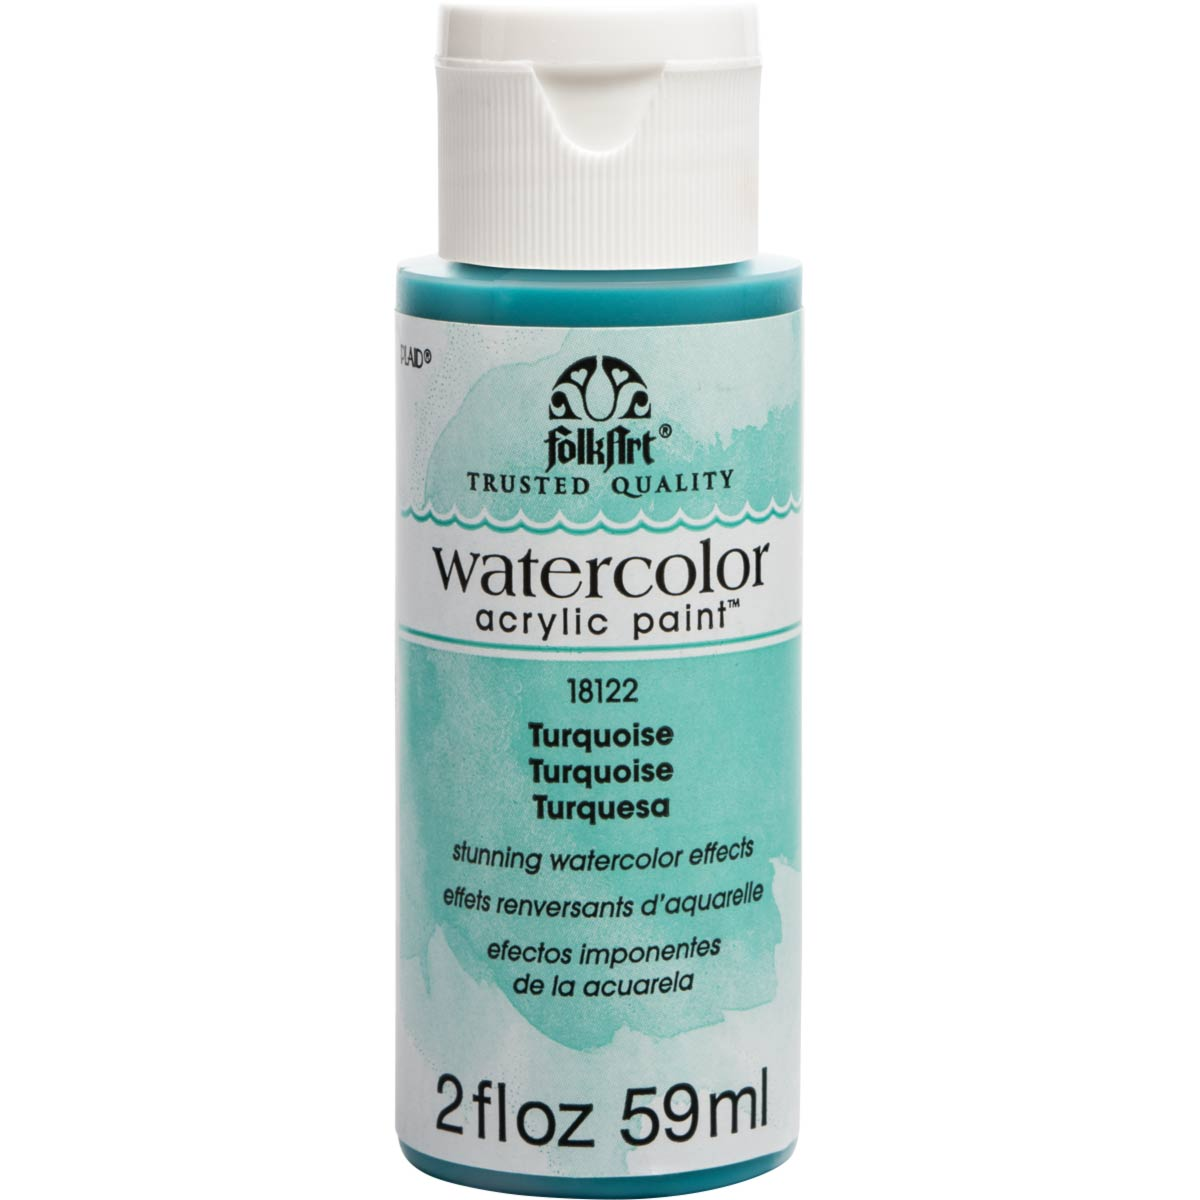 FolkArt ® Watercolor Acrylic Paint™ - Turquoise, 2 oz. - 18122